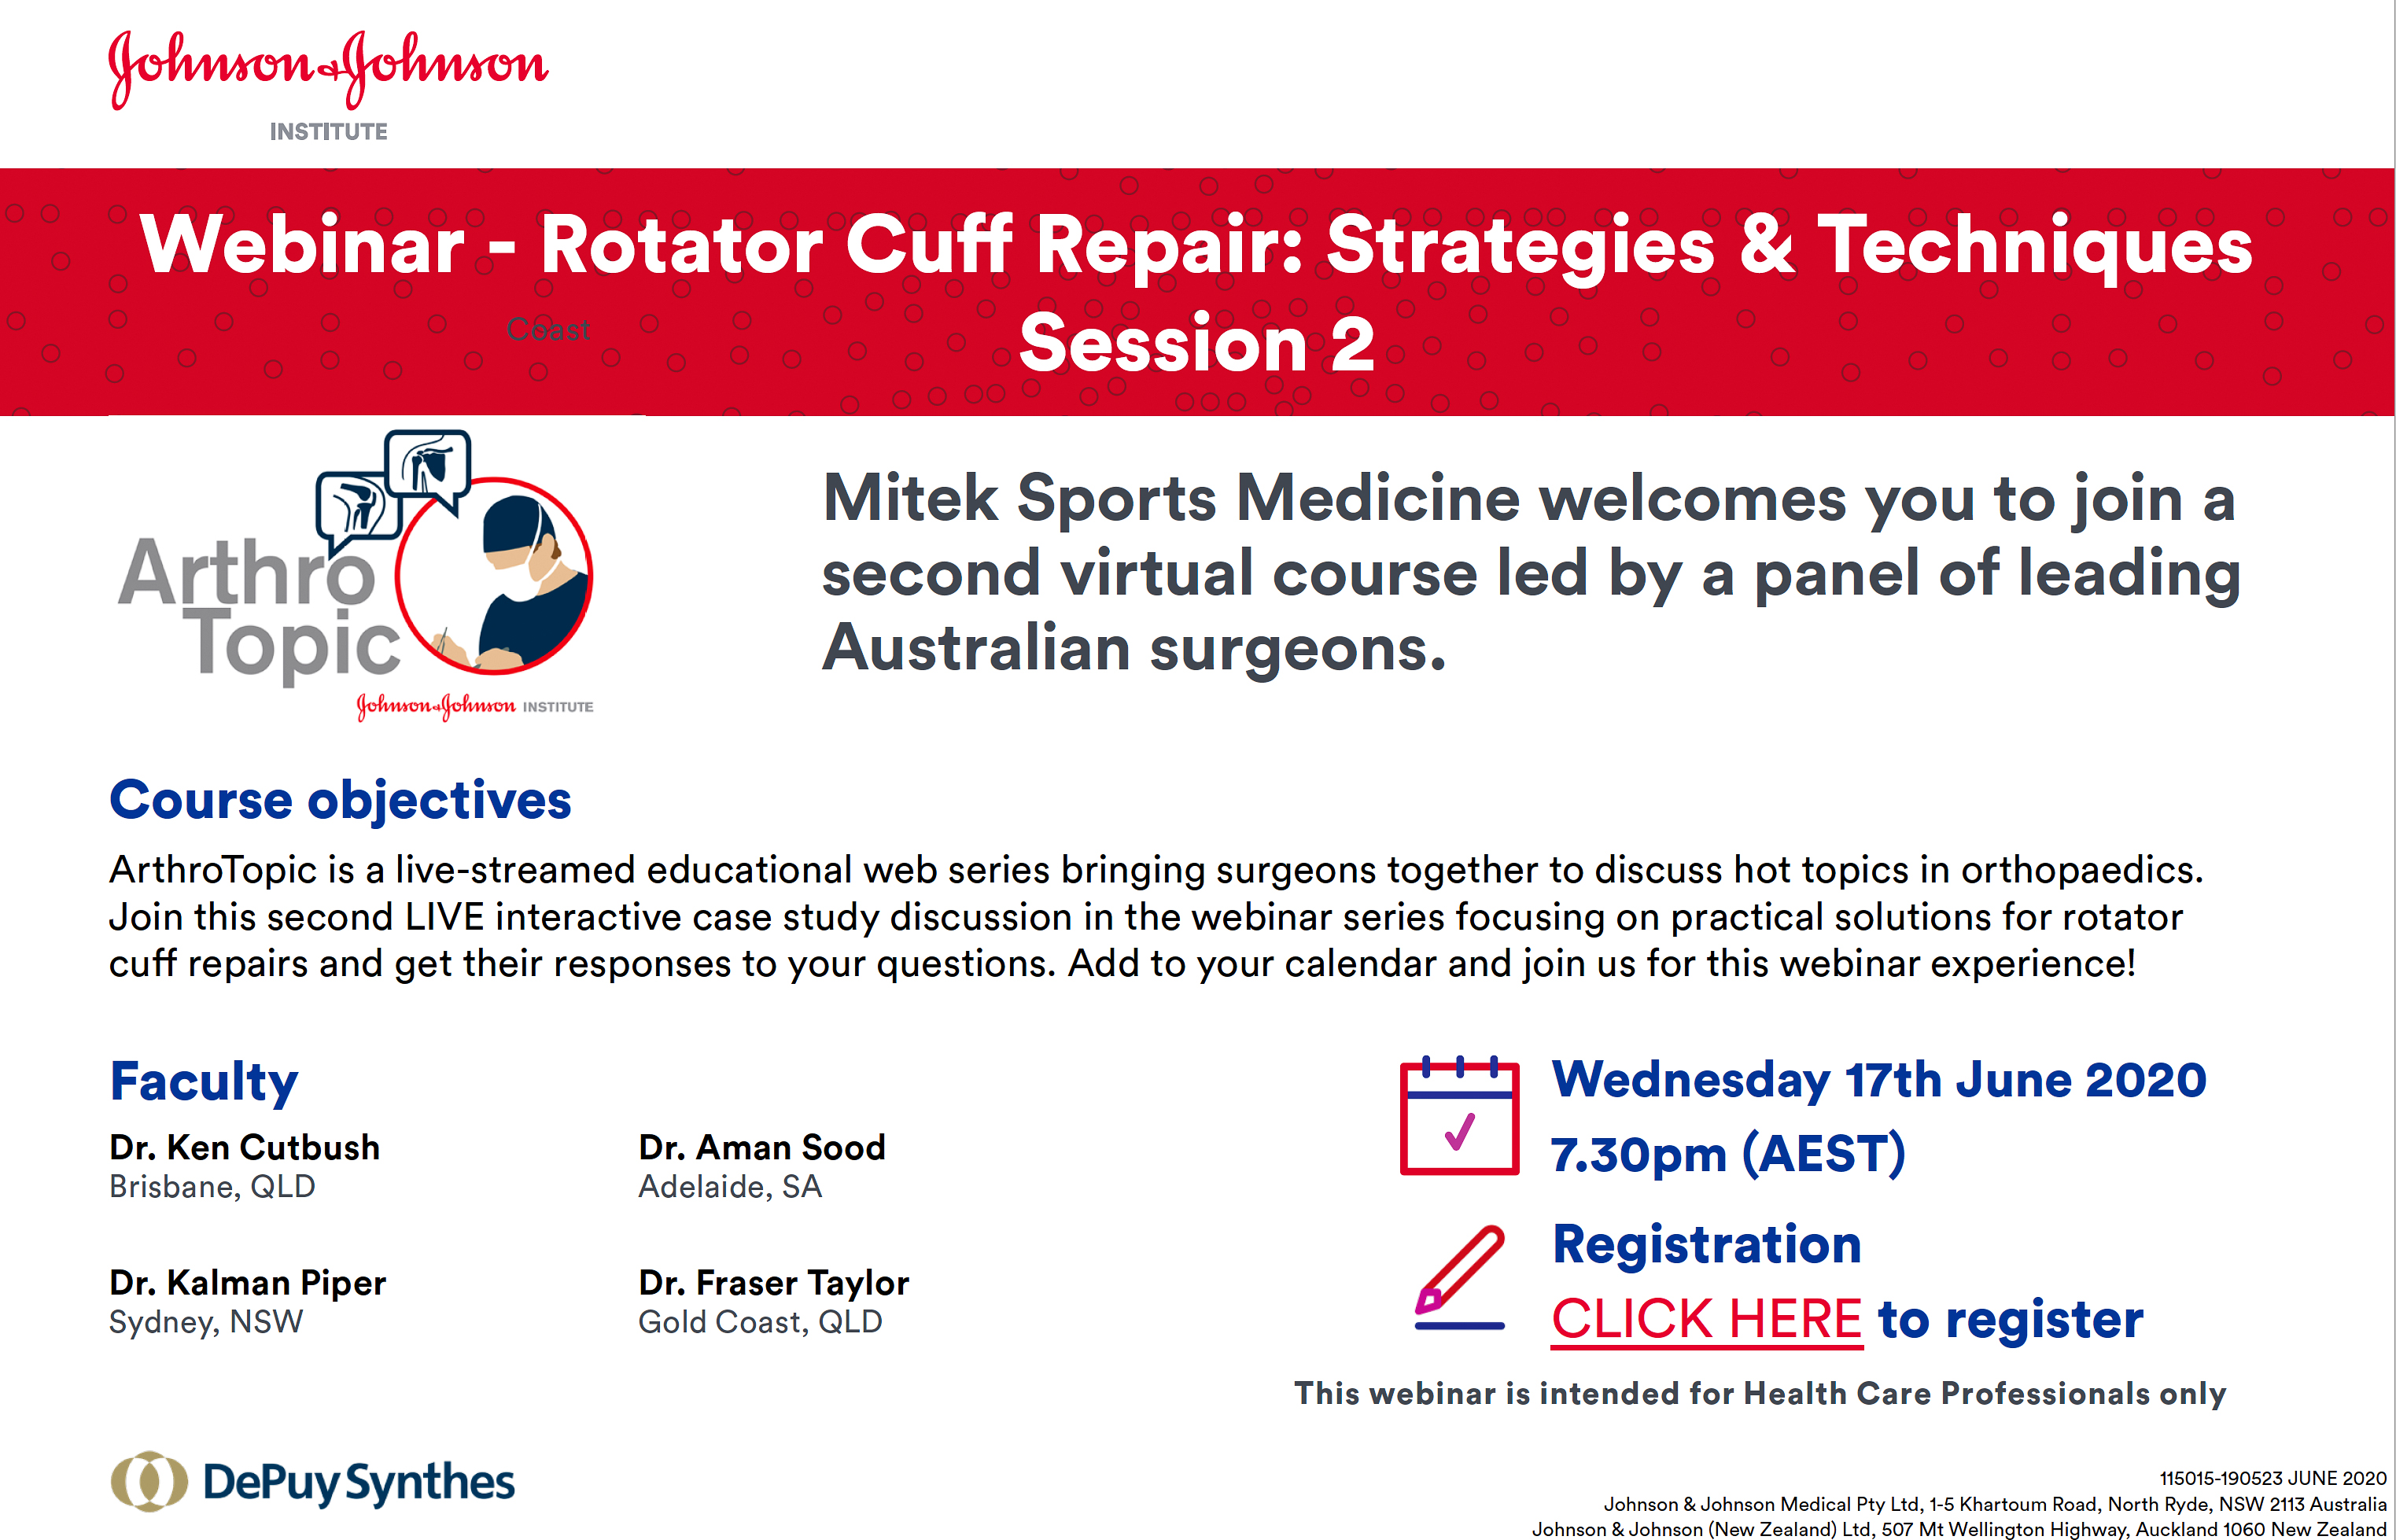 Rotator Cuff Webinar: Strategies & Techniques